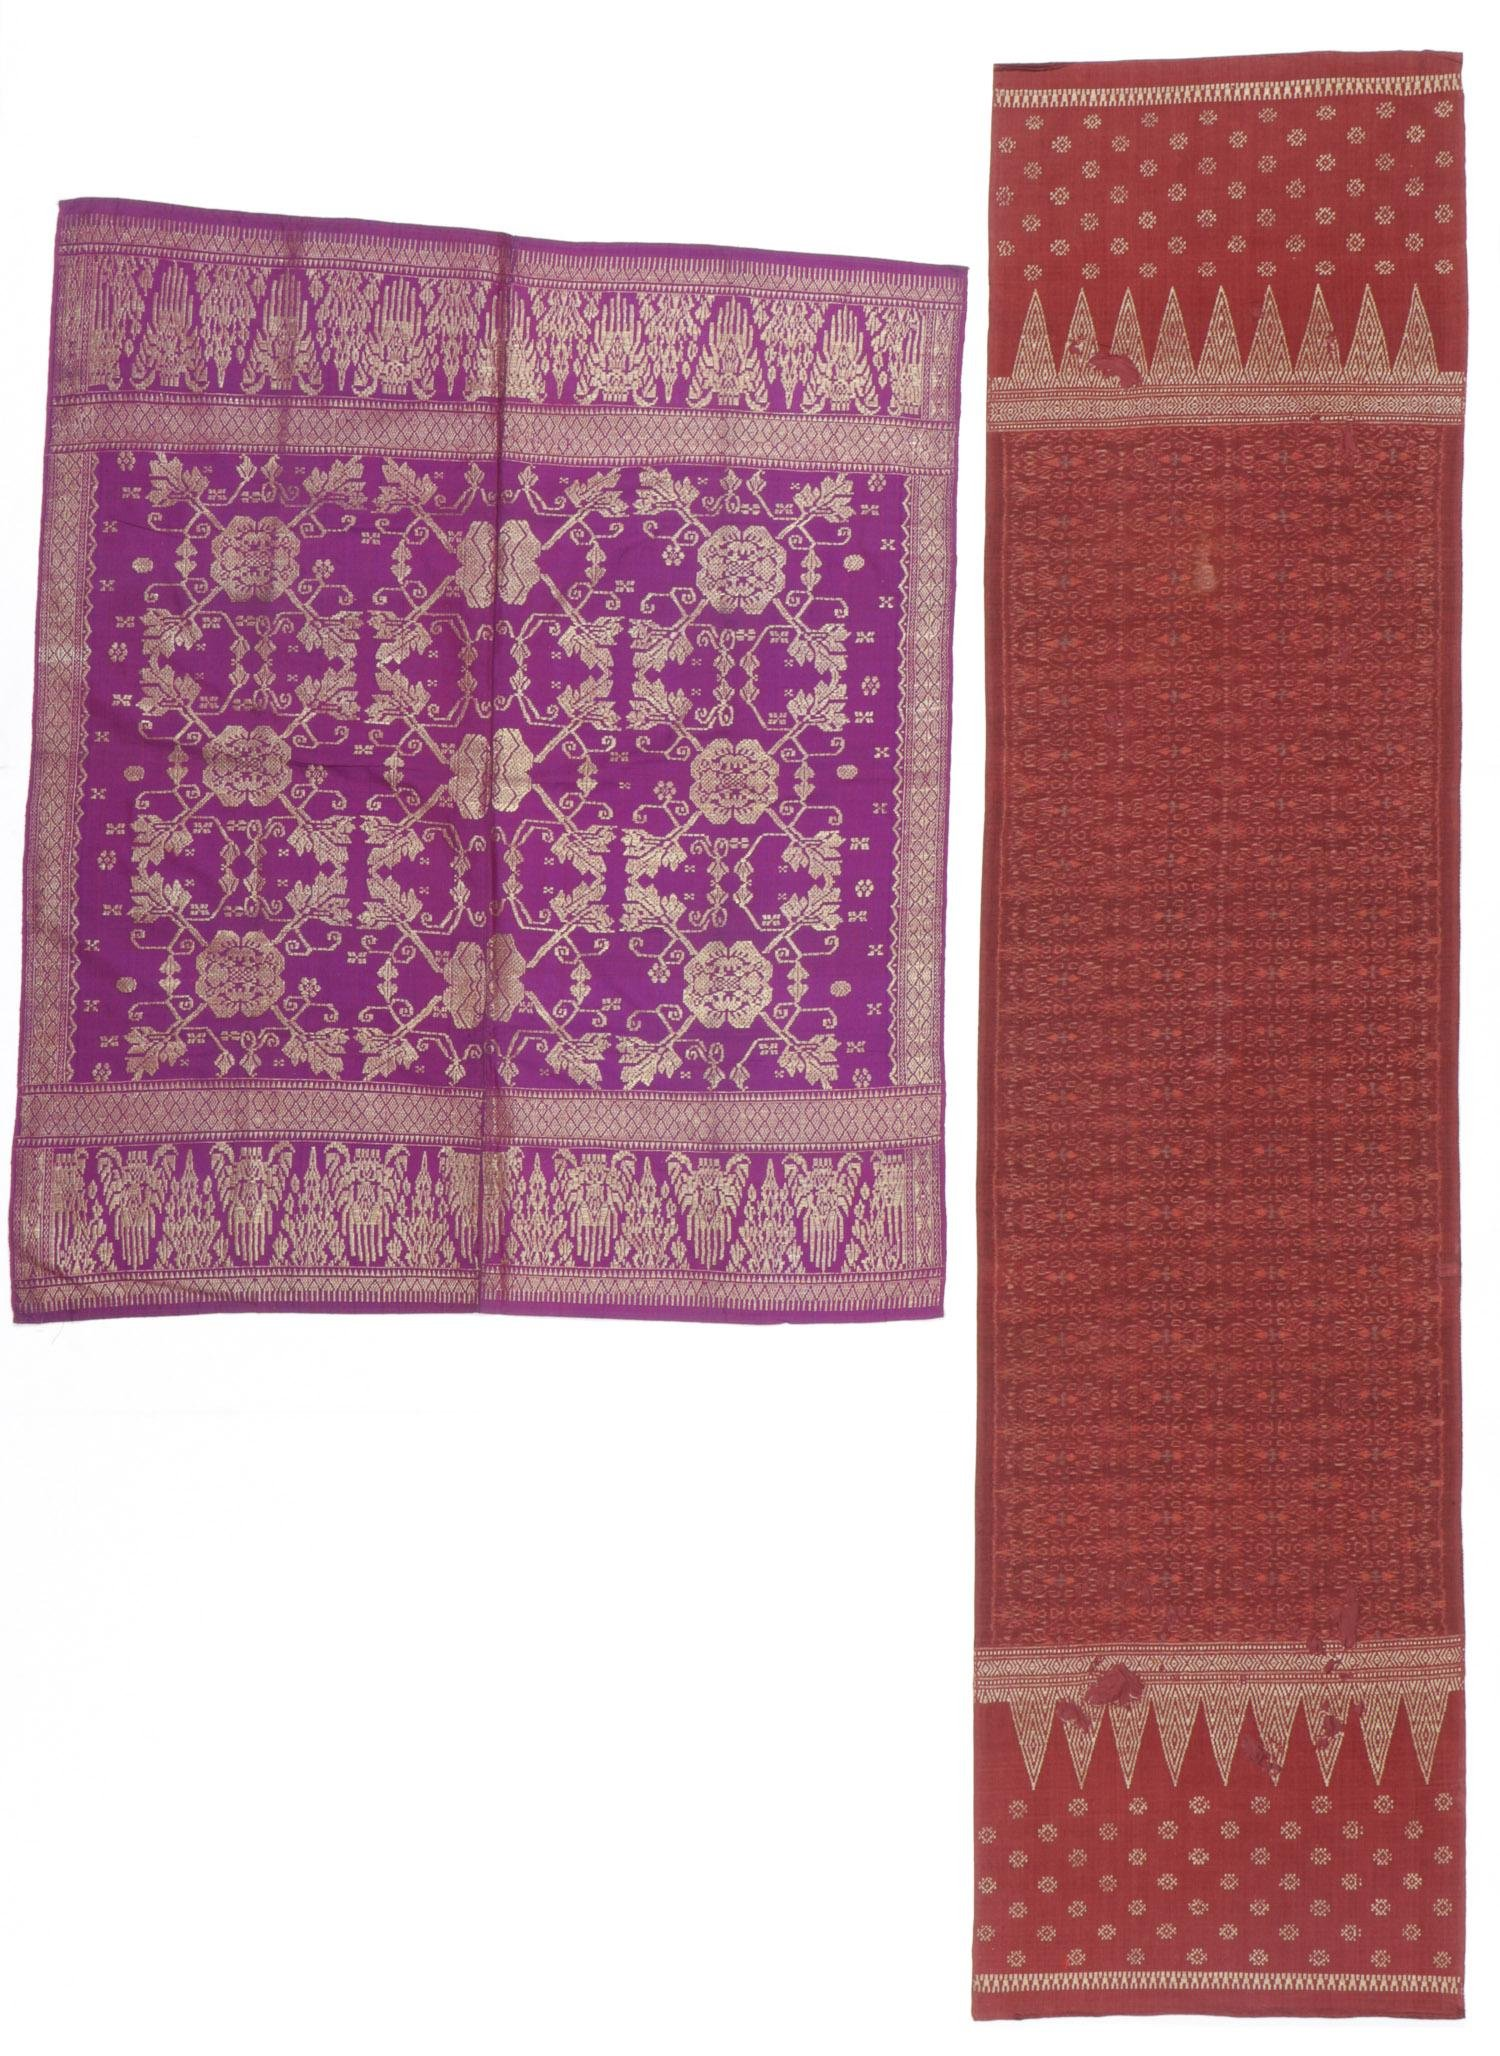 2 Indonesian Textiles with Songket